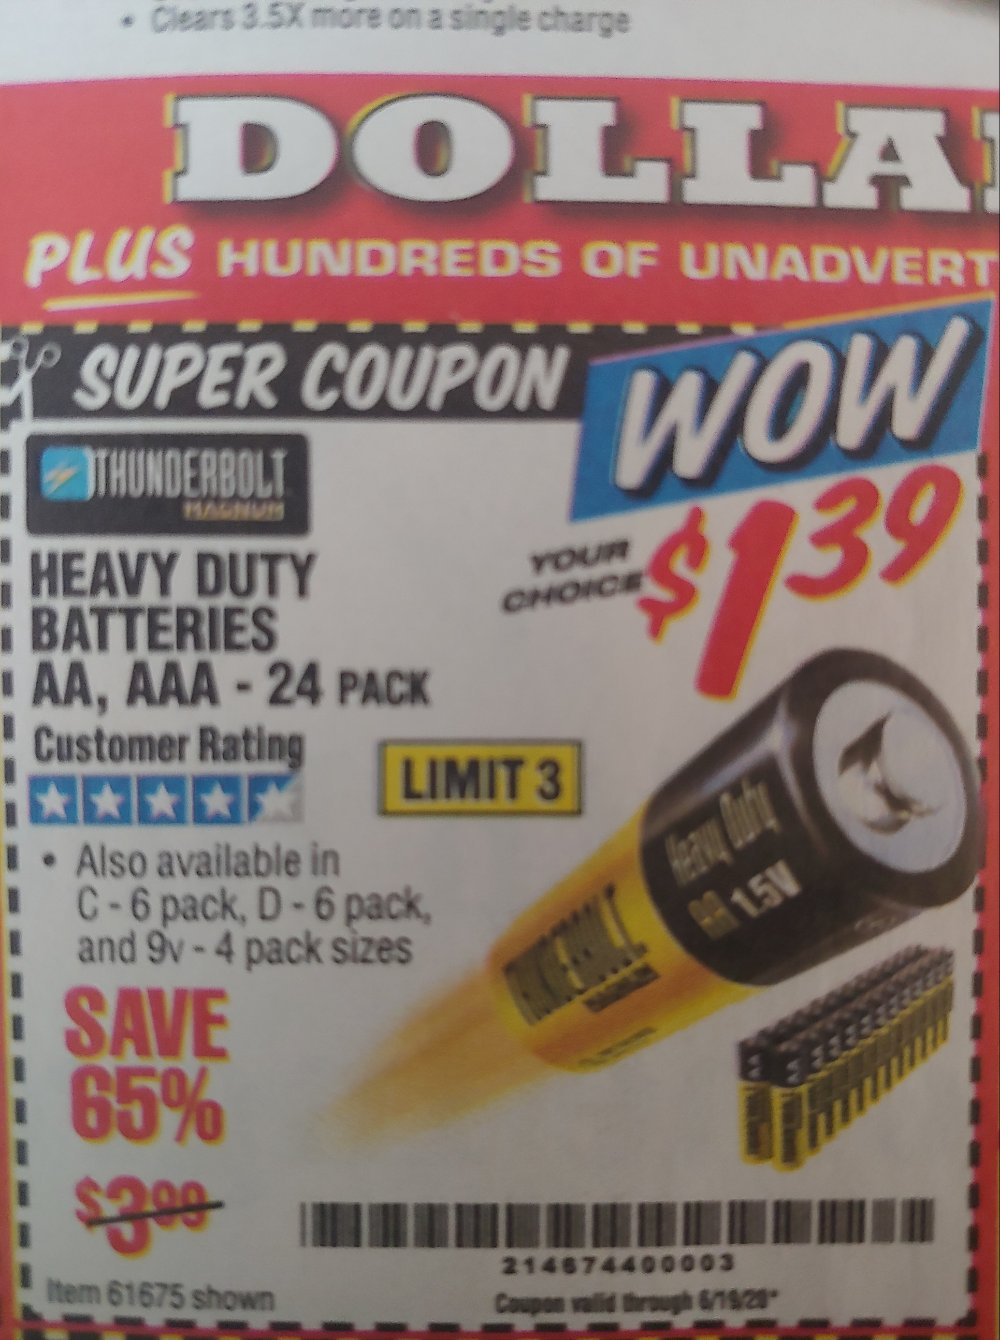 Harbor Freight Coupon, HF Coupons - Heavy Duty Batteries